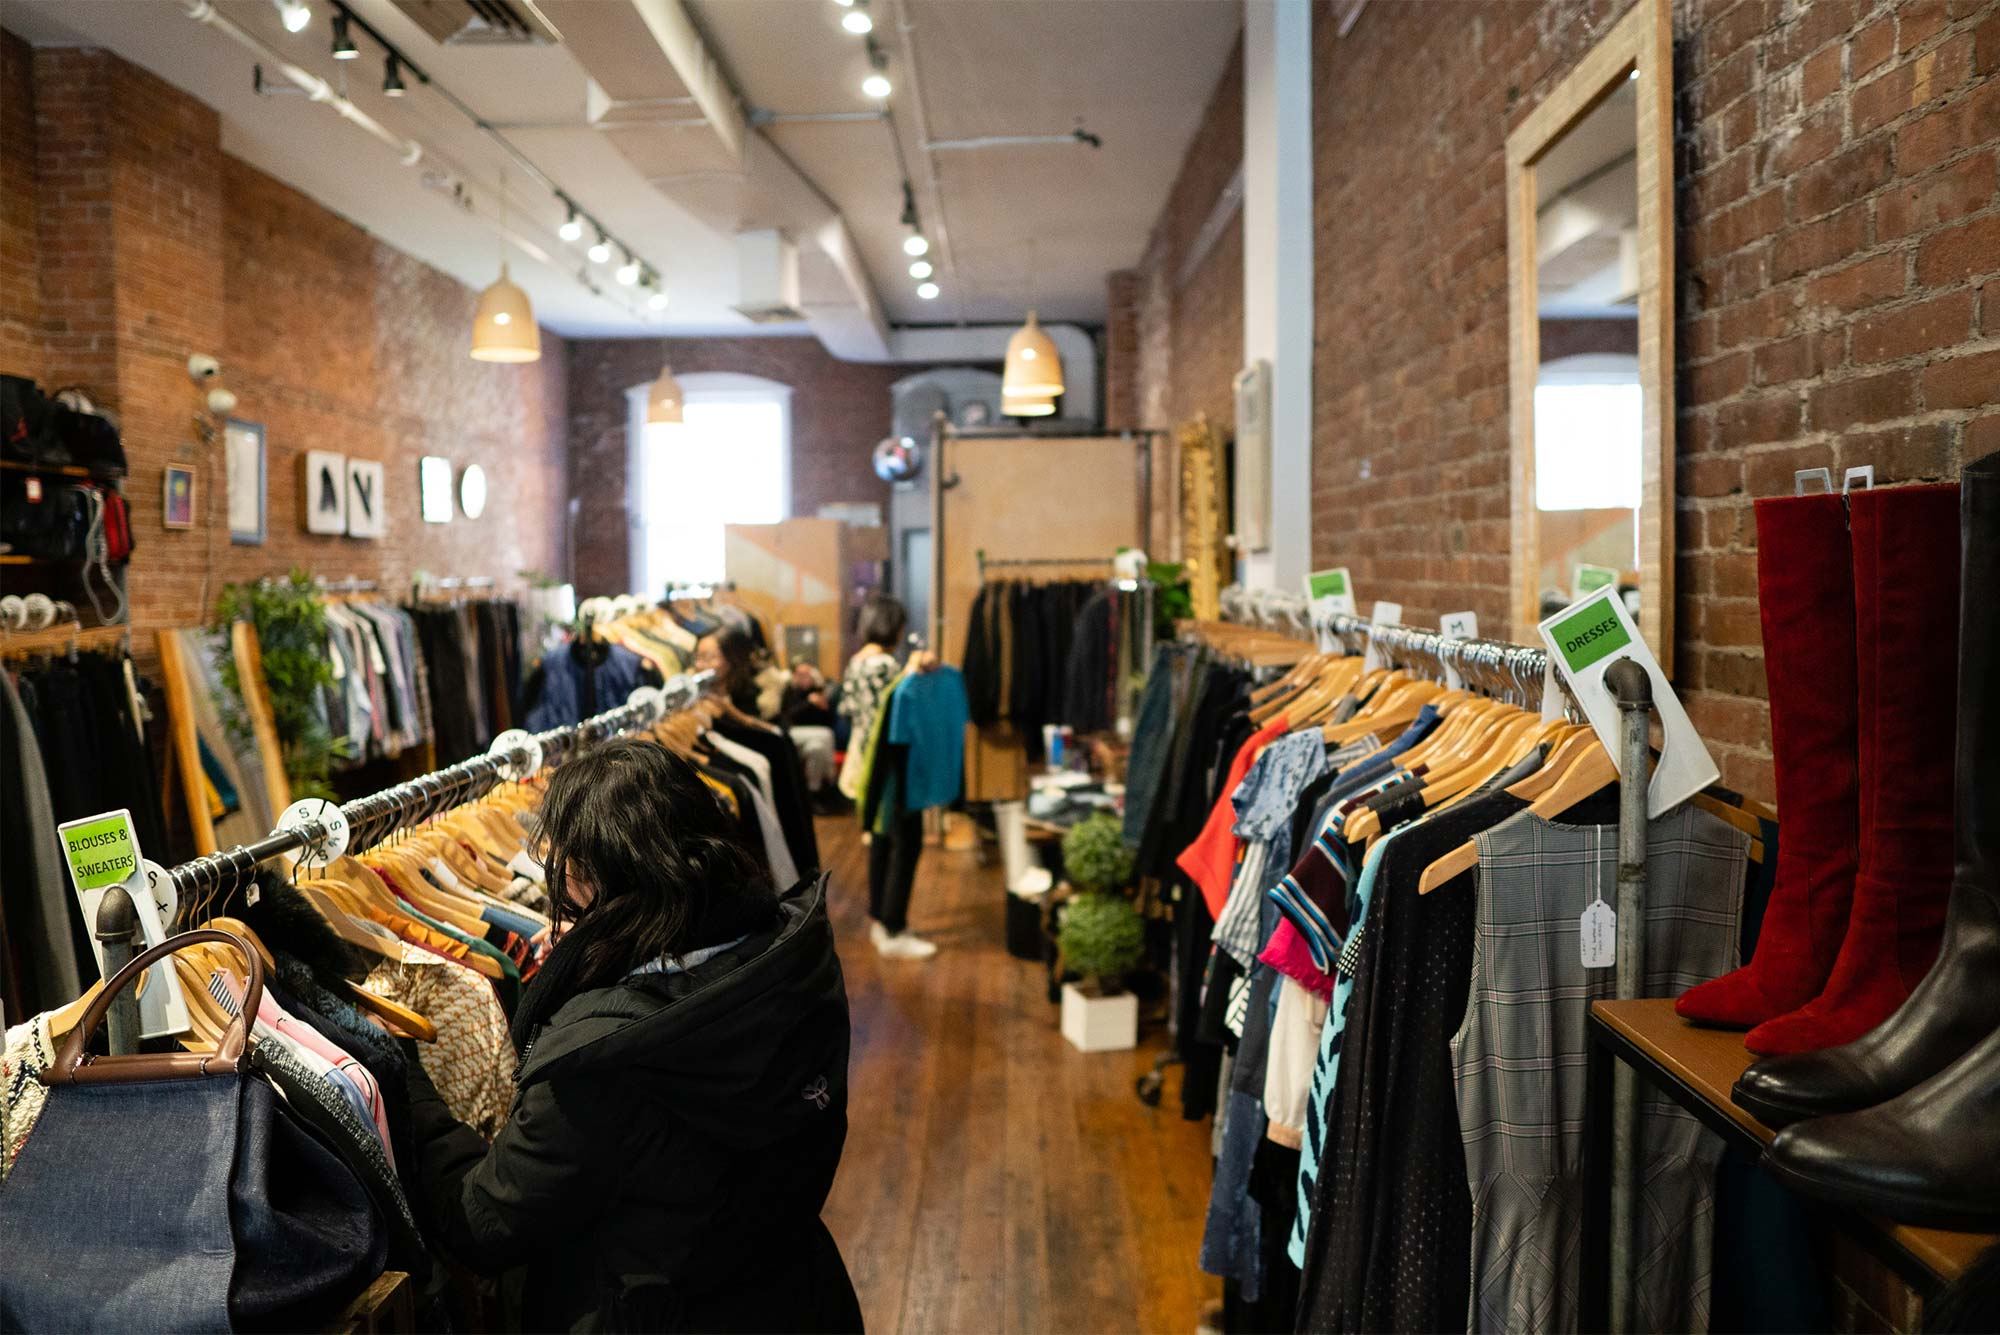 Interior view of Boomerangs Special Edition thrift shop located at 1407 Washington St. in Boston's South End neighborhood.